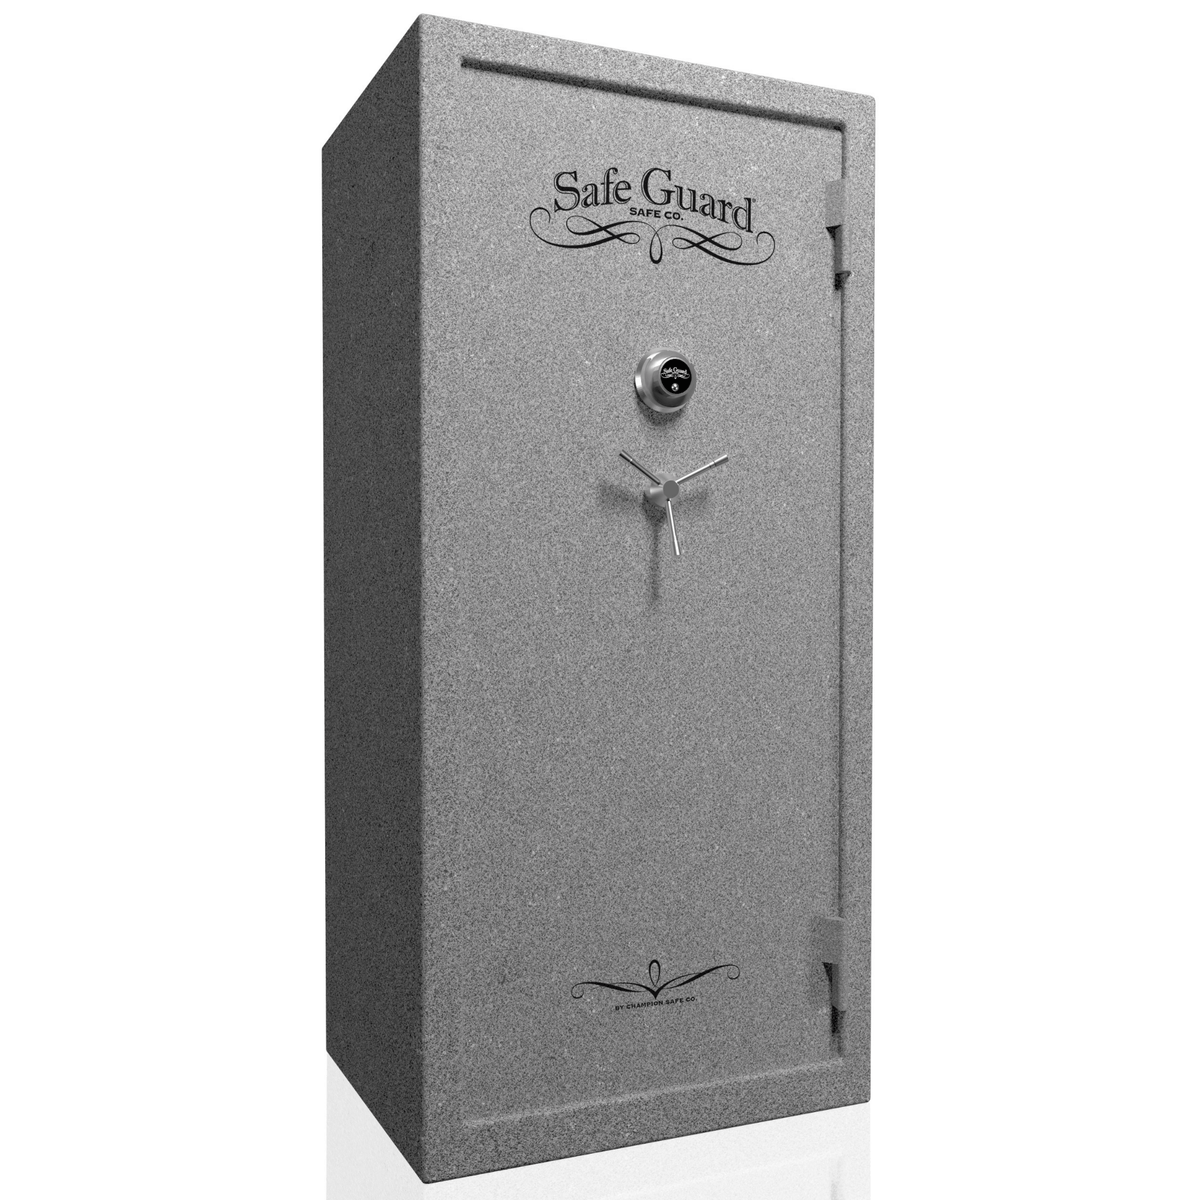 "GR-20 | 60 Minute Fire Protection | Granite Textured | Mechanical Dial | Dimensions: 60"" (H) x 28"" (W) x 22.5"" (D)"